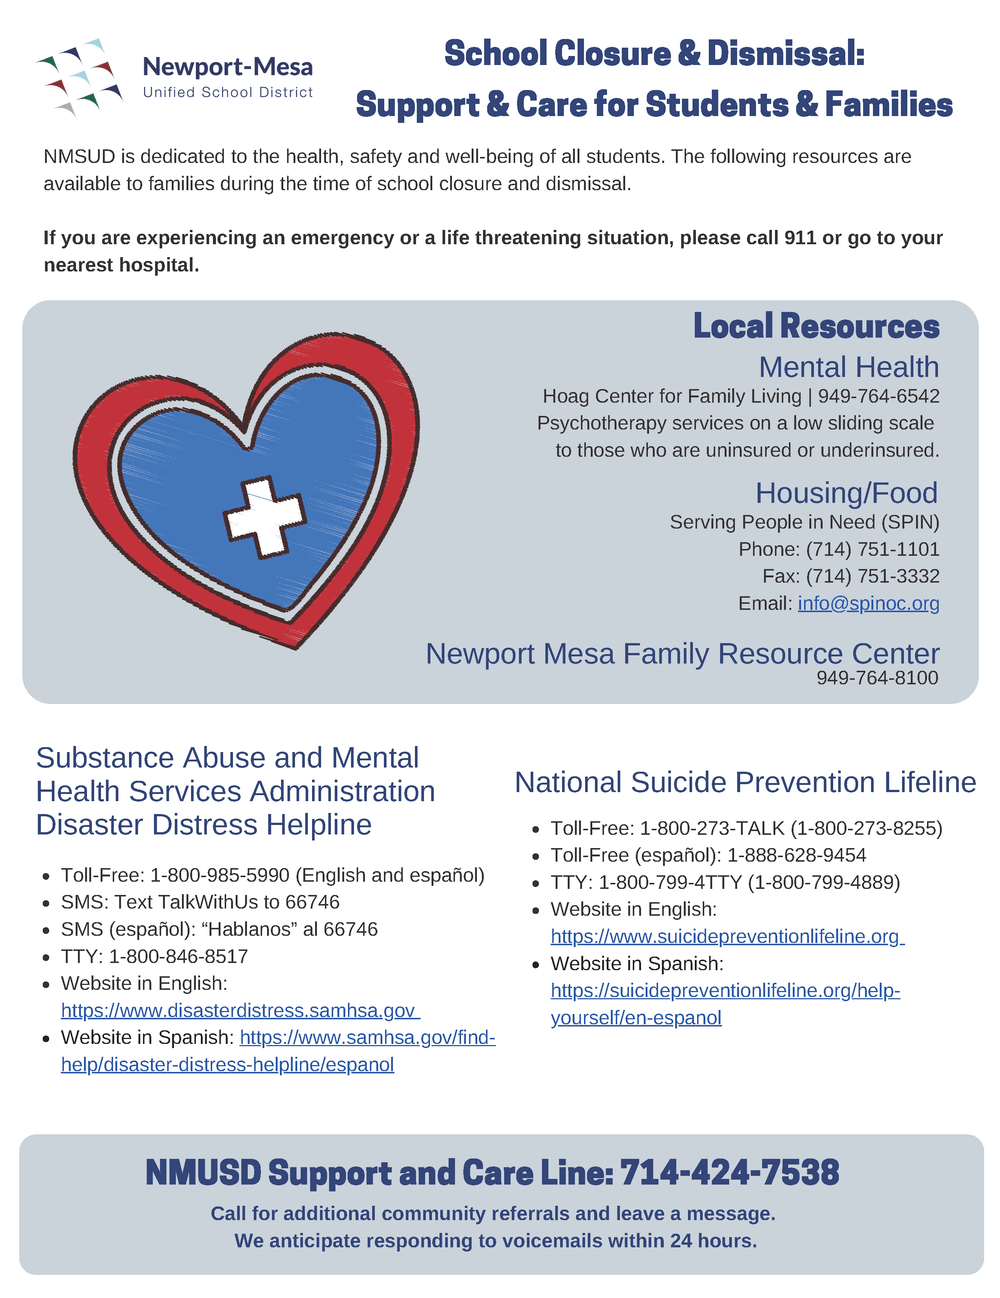 Support and Care Resources Flyer